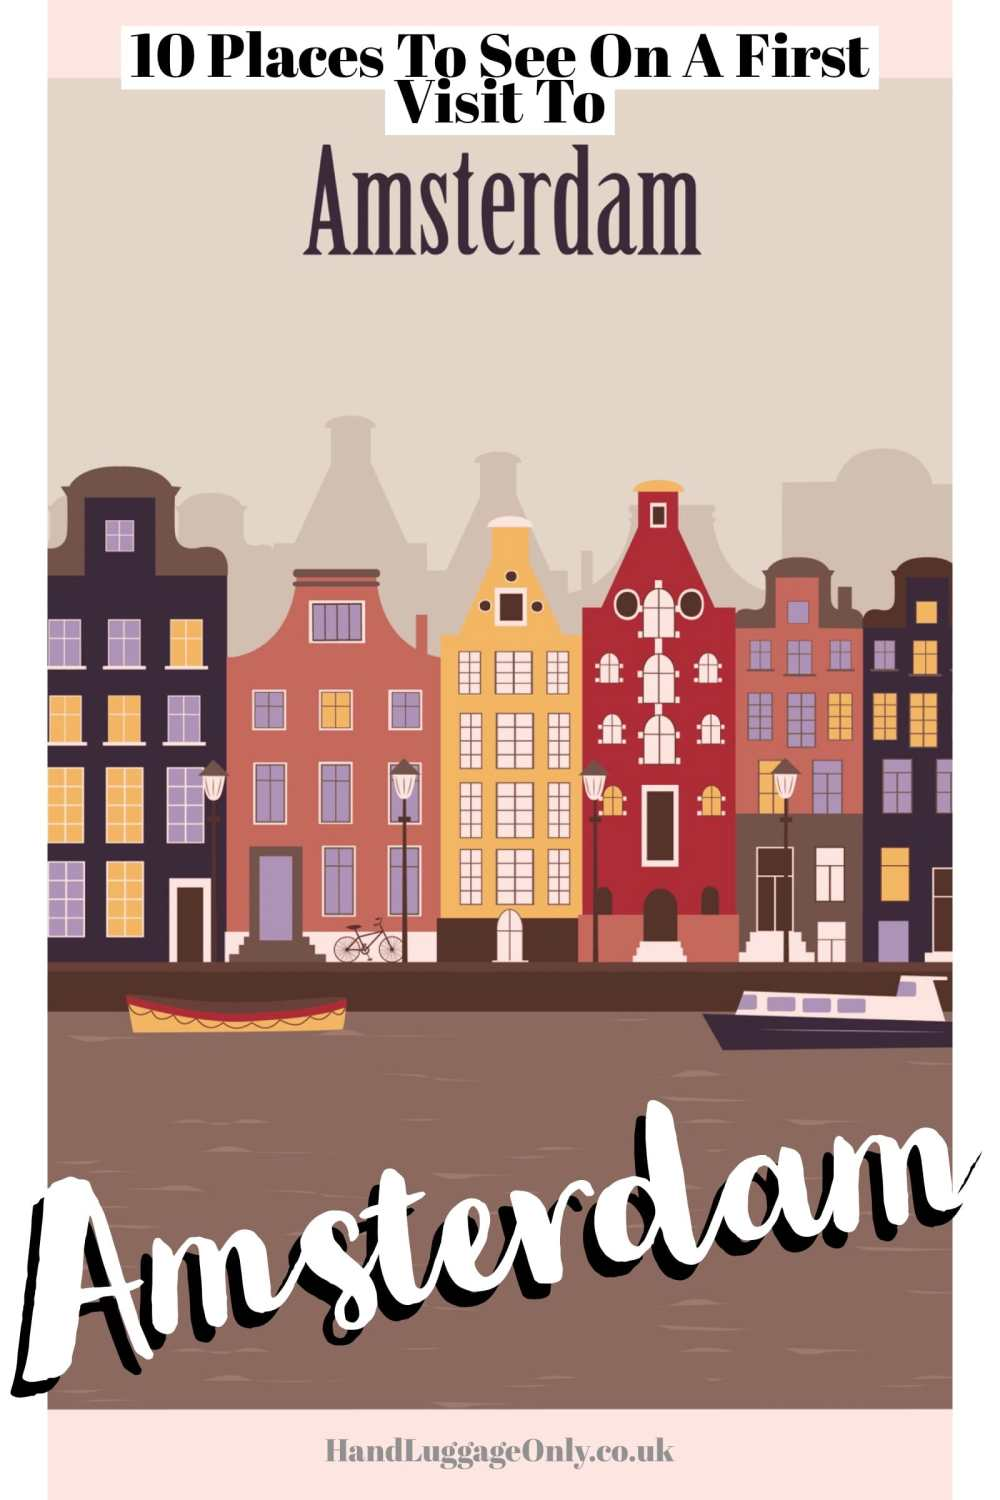 10 Amazing Places To See On A First Visit To Amsterdam